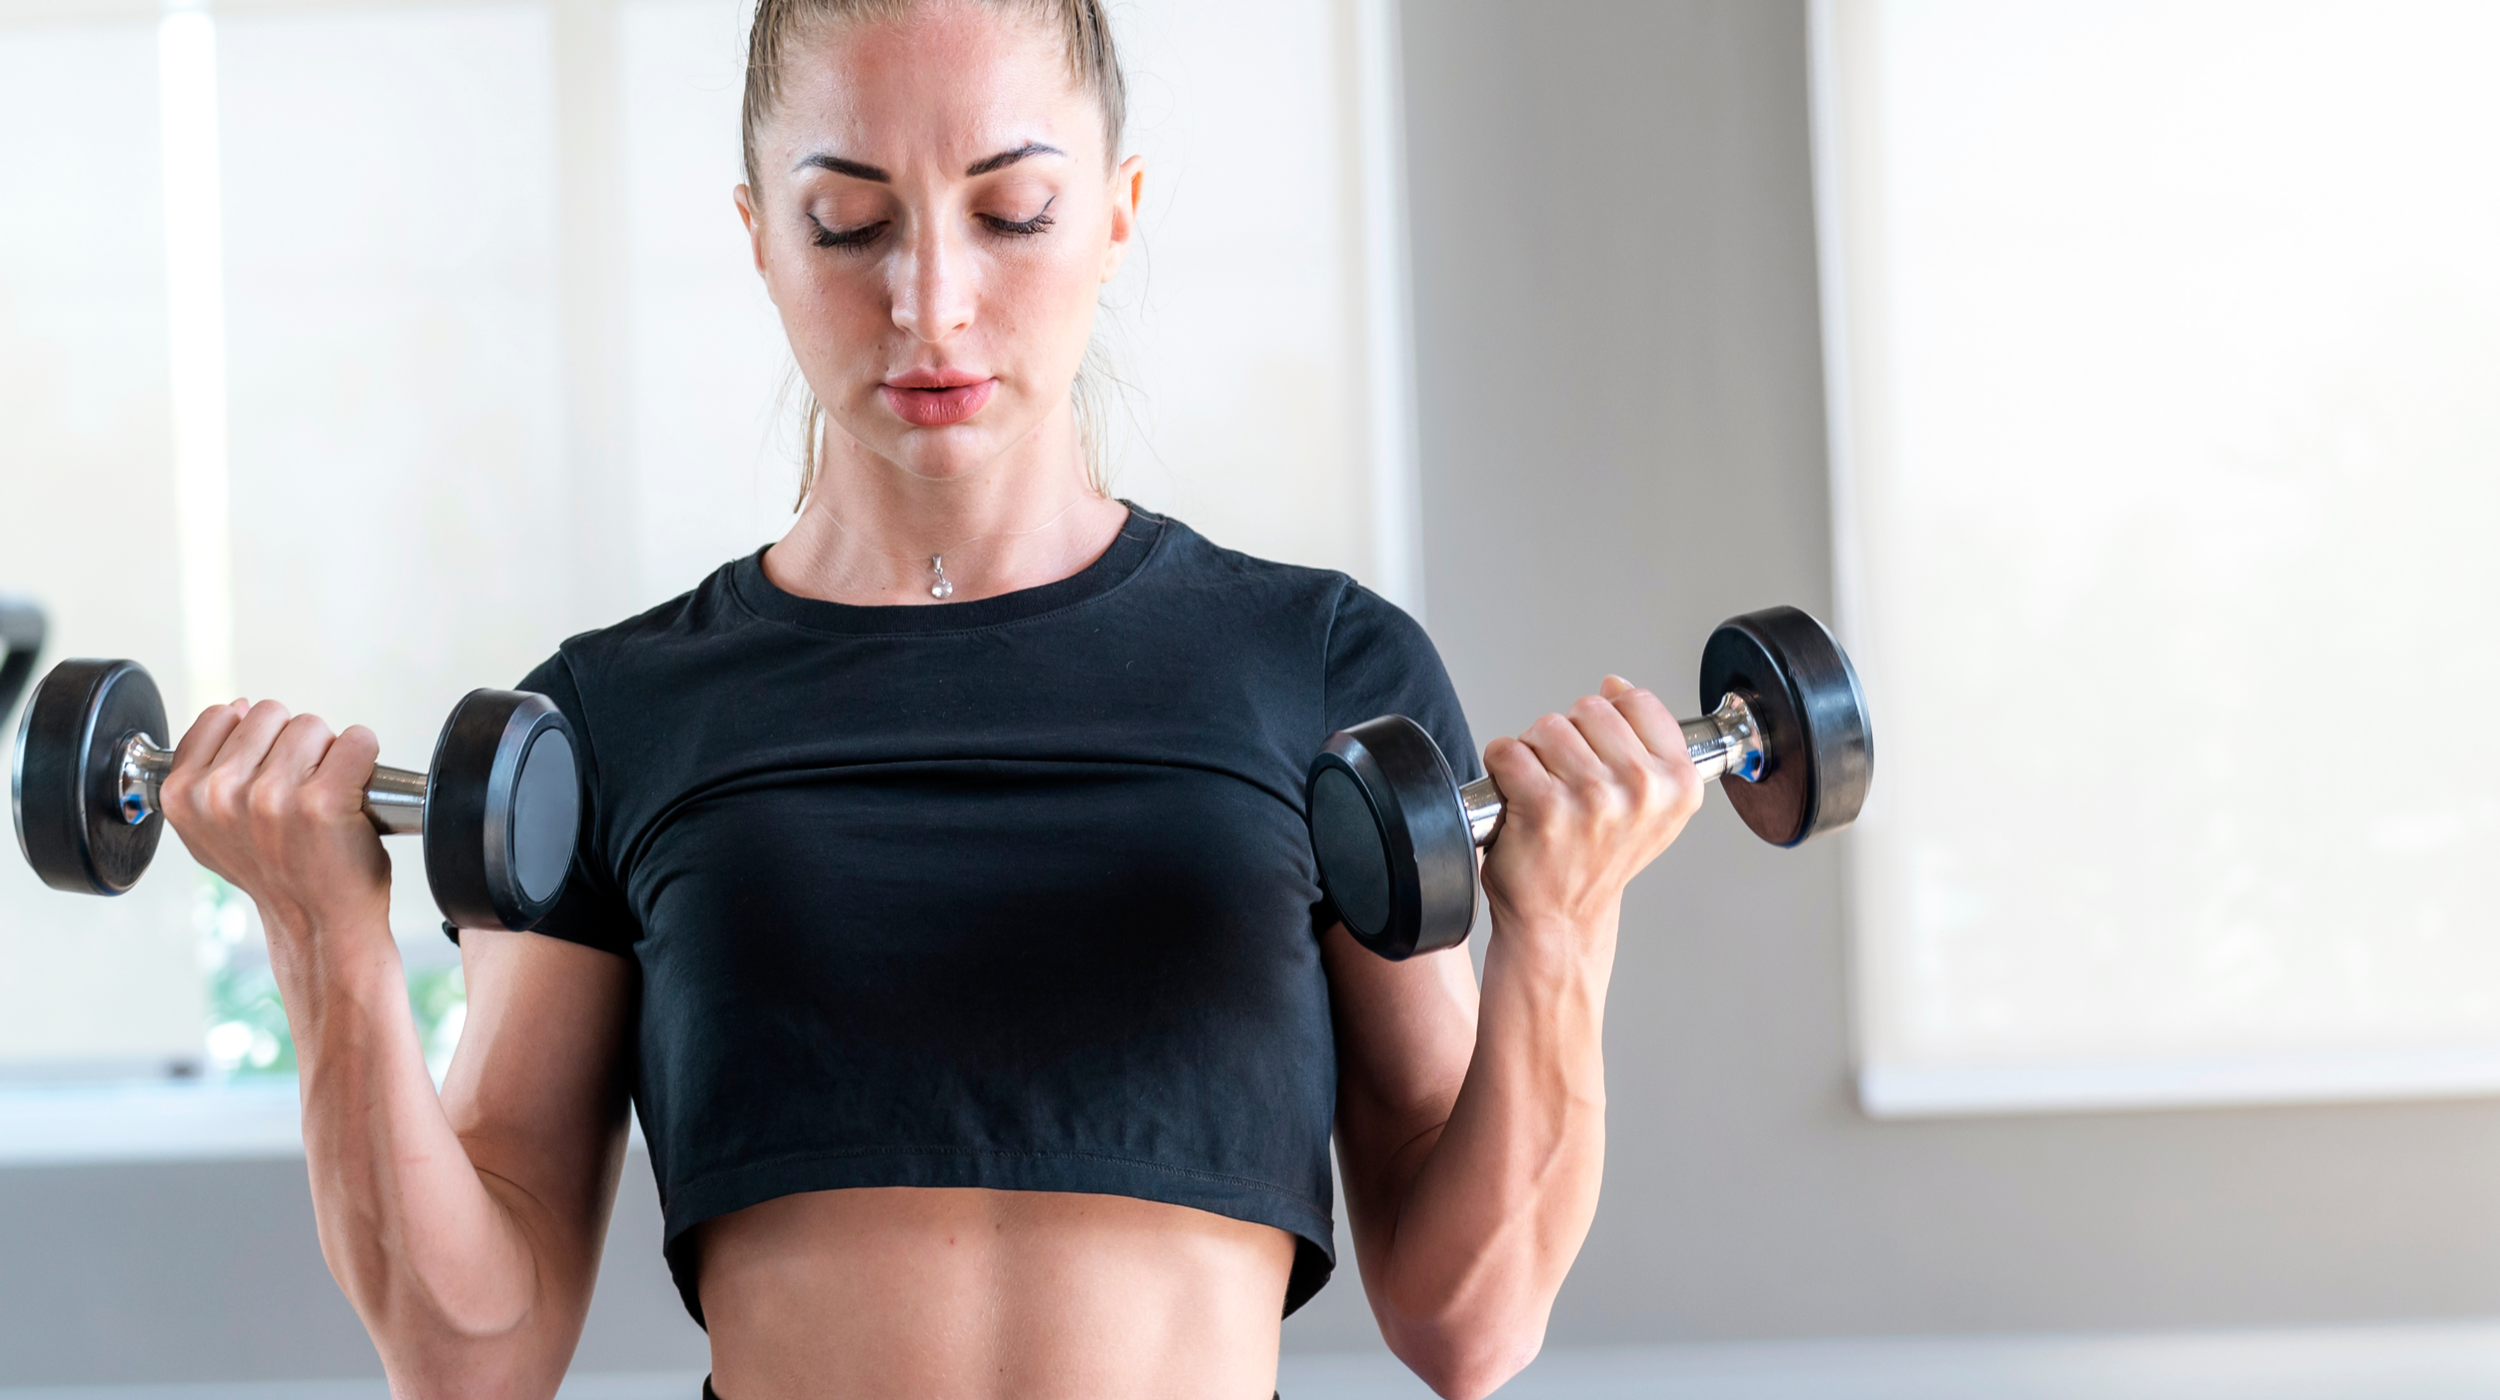 The Best Workout Routine for Women Who Want to Gain Muscle